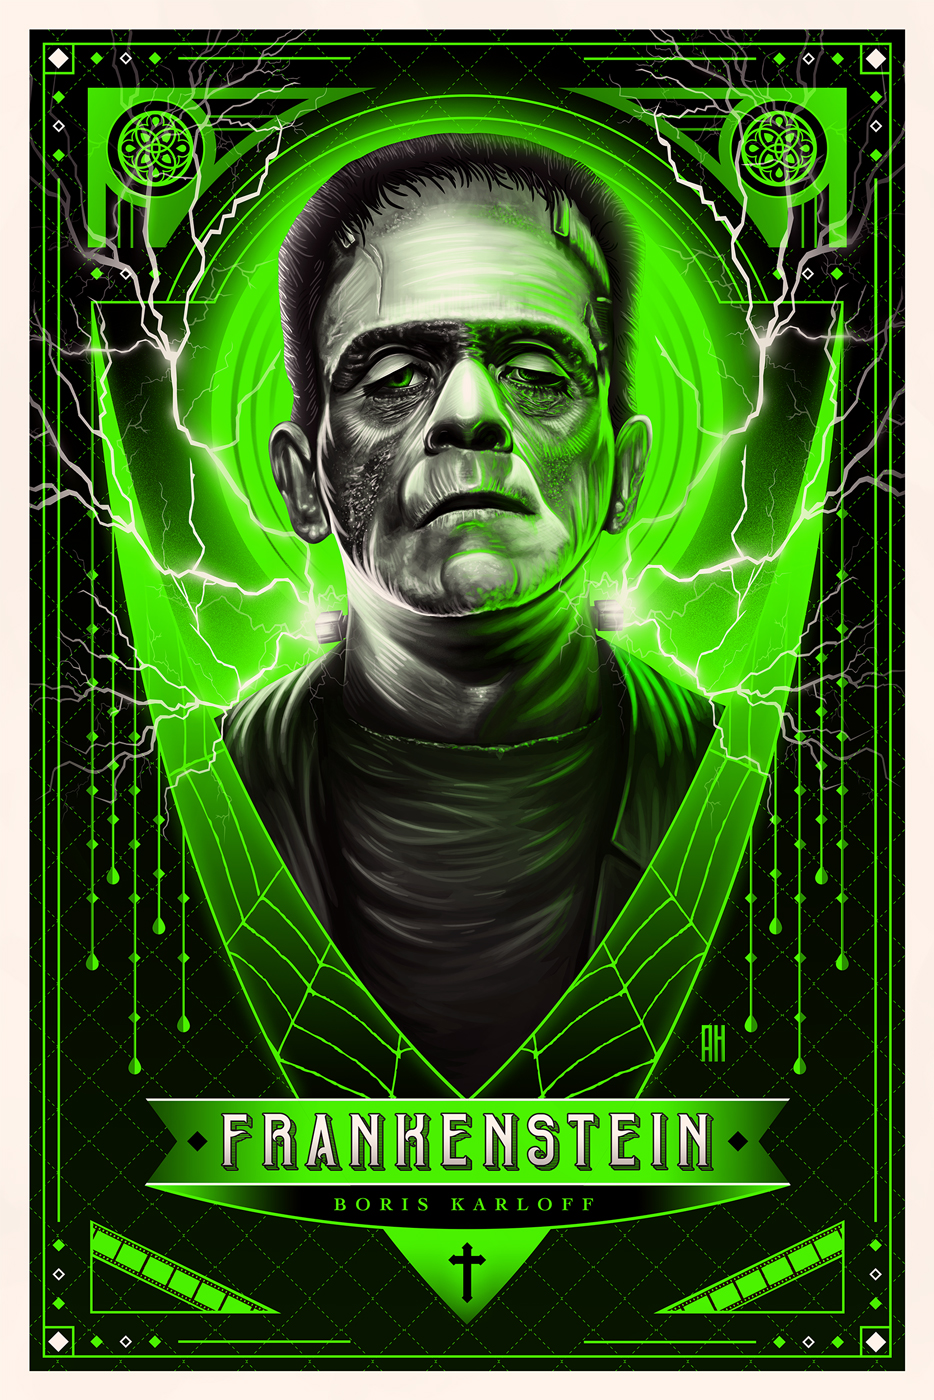 frankenstein_alexhess_web_wc.jpg